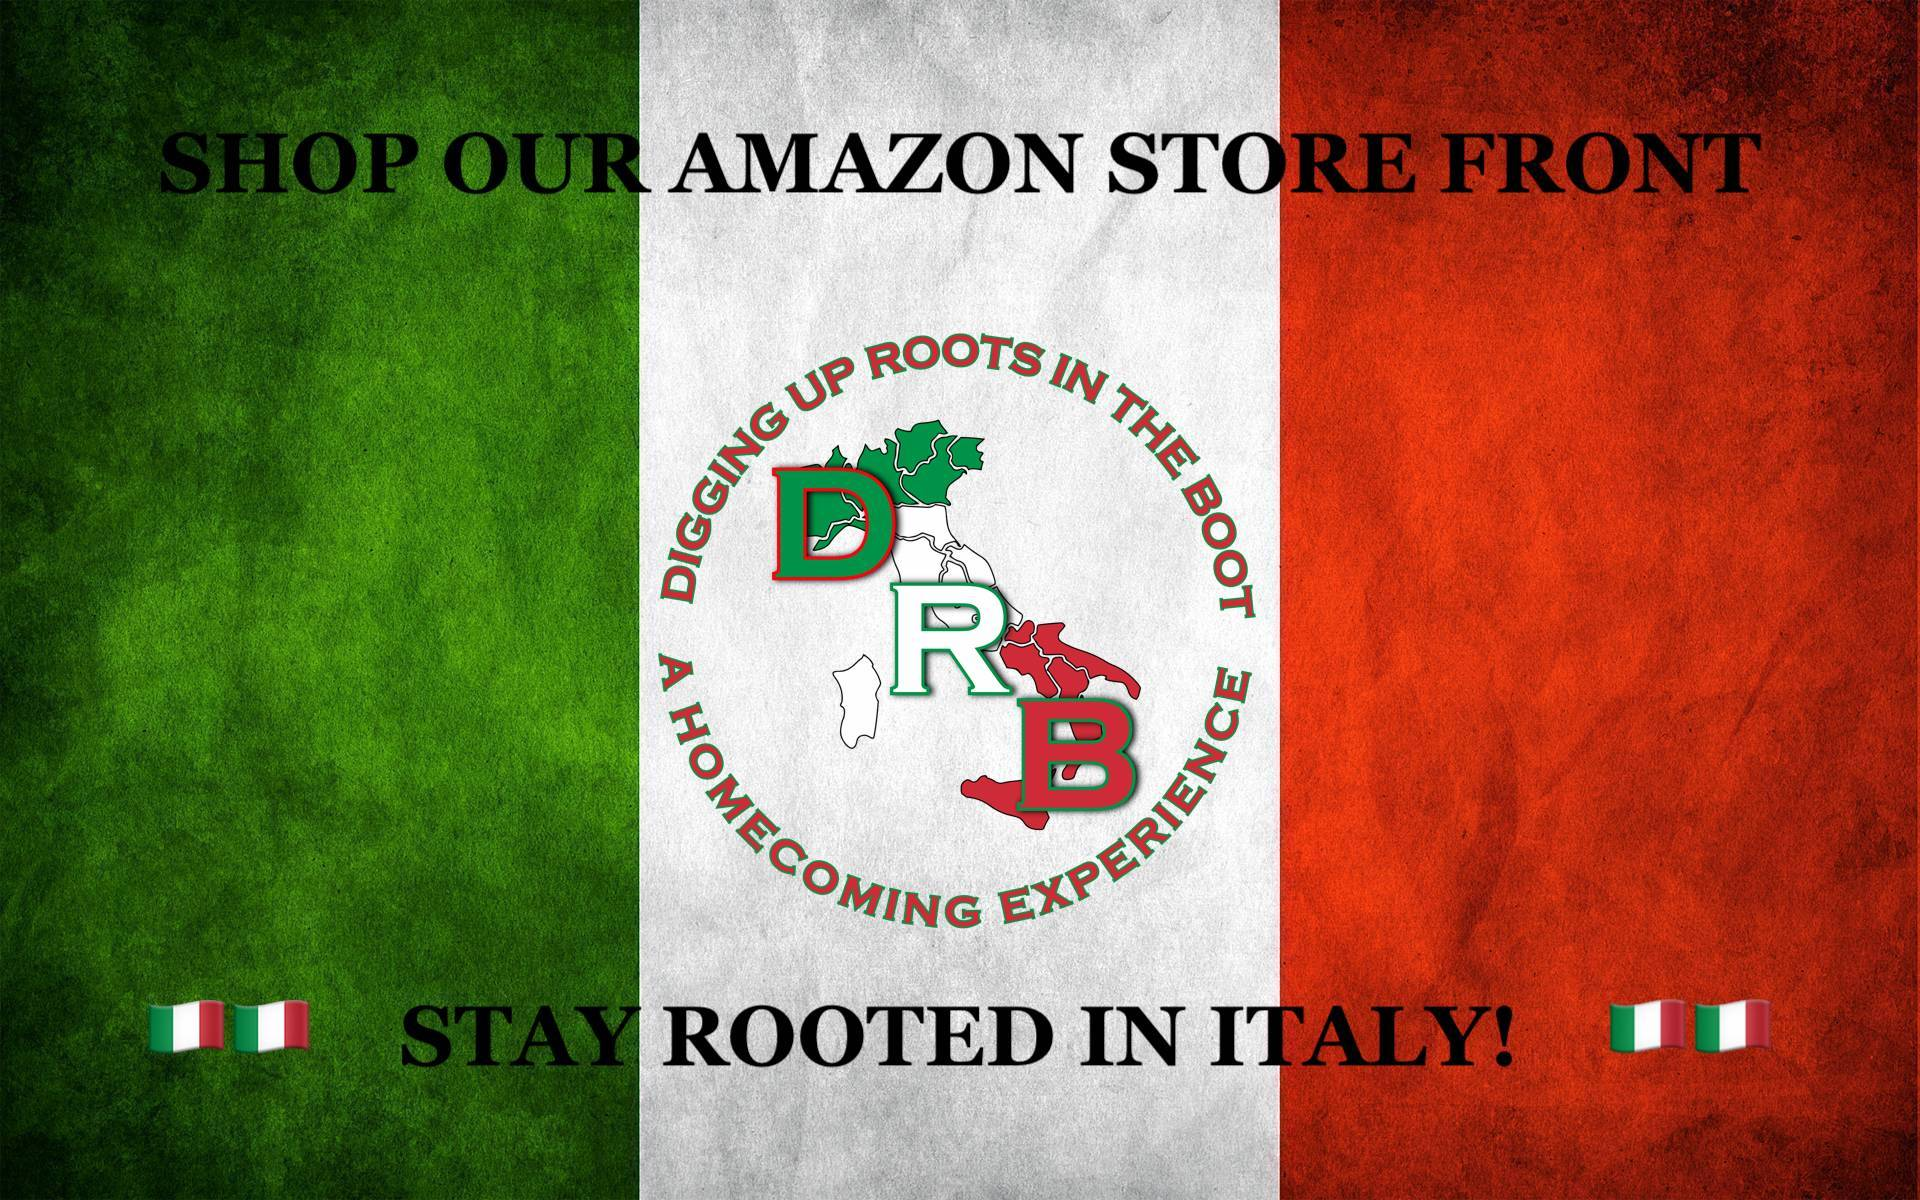 SHOP OUR AMAZON STOREFRONT